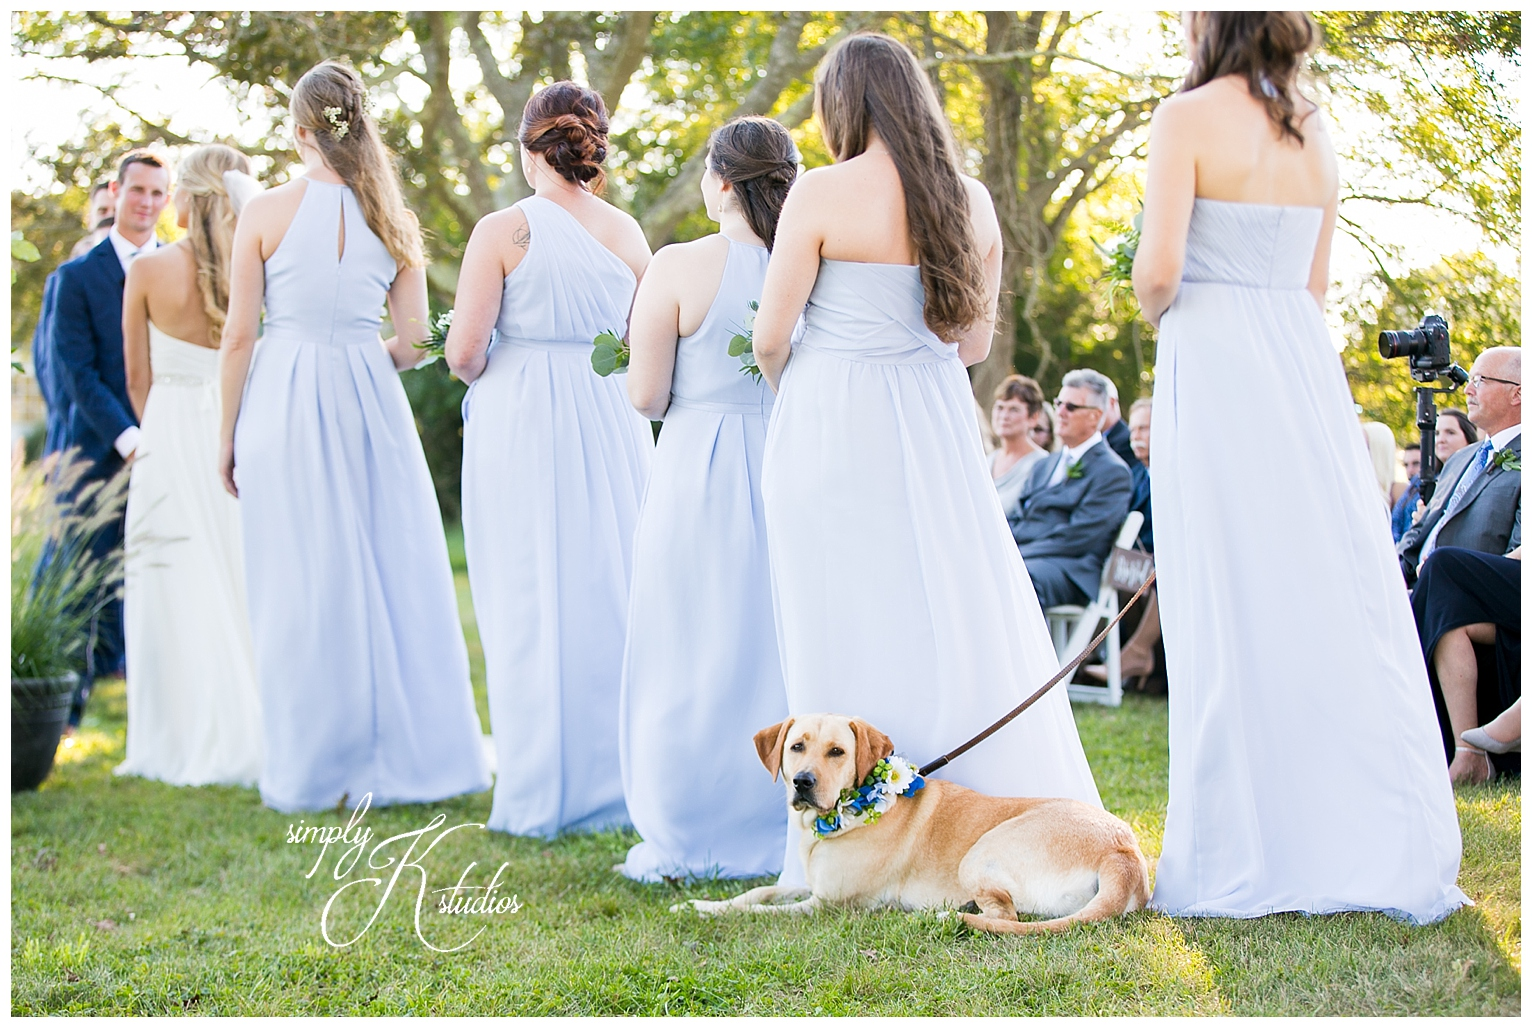 Labs with bridesmaids.jpg